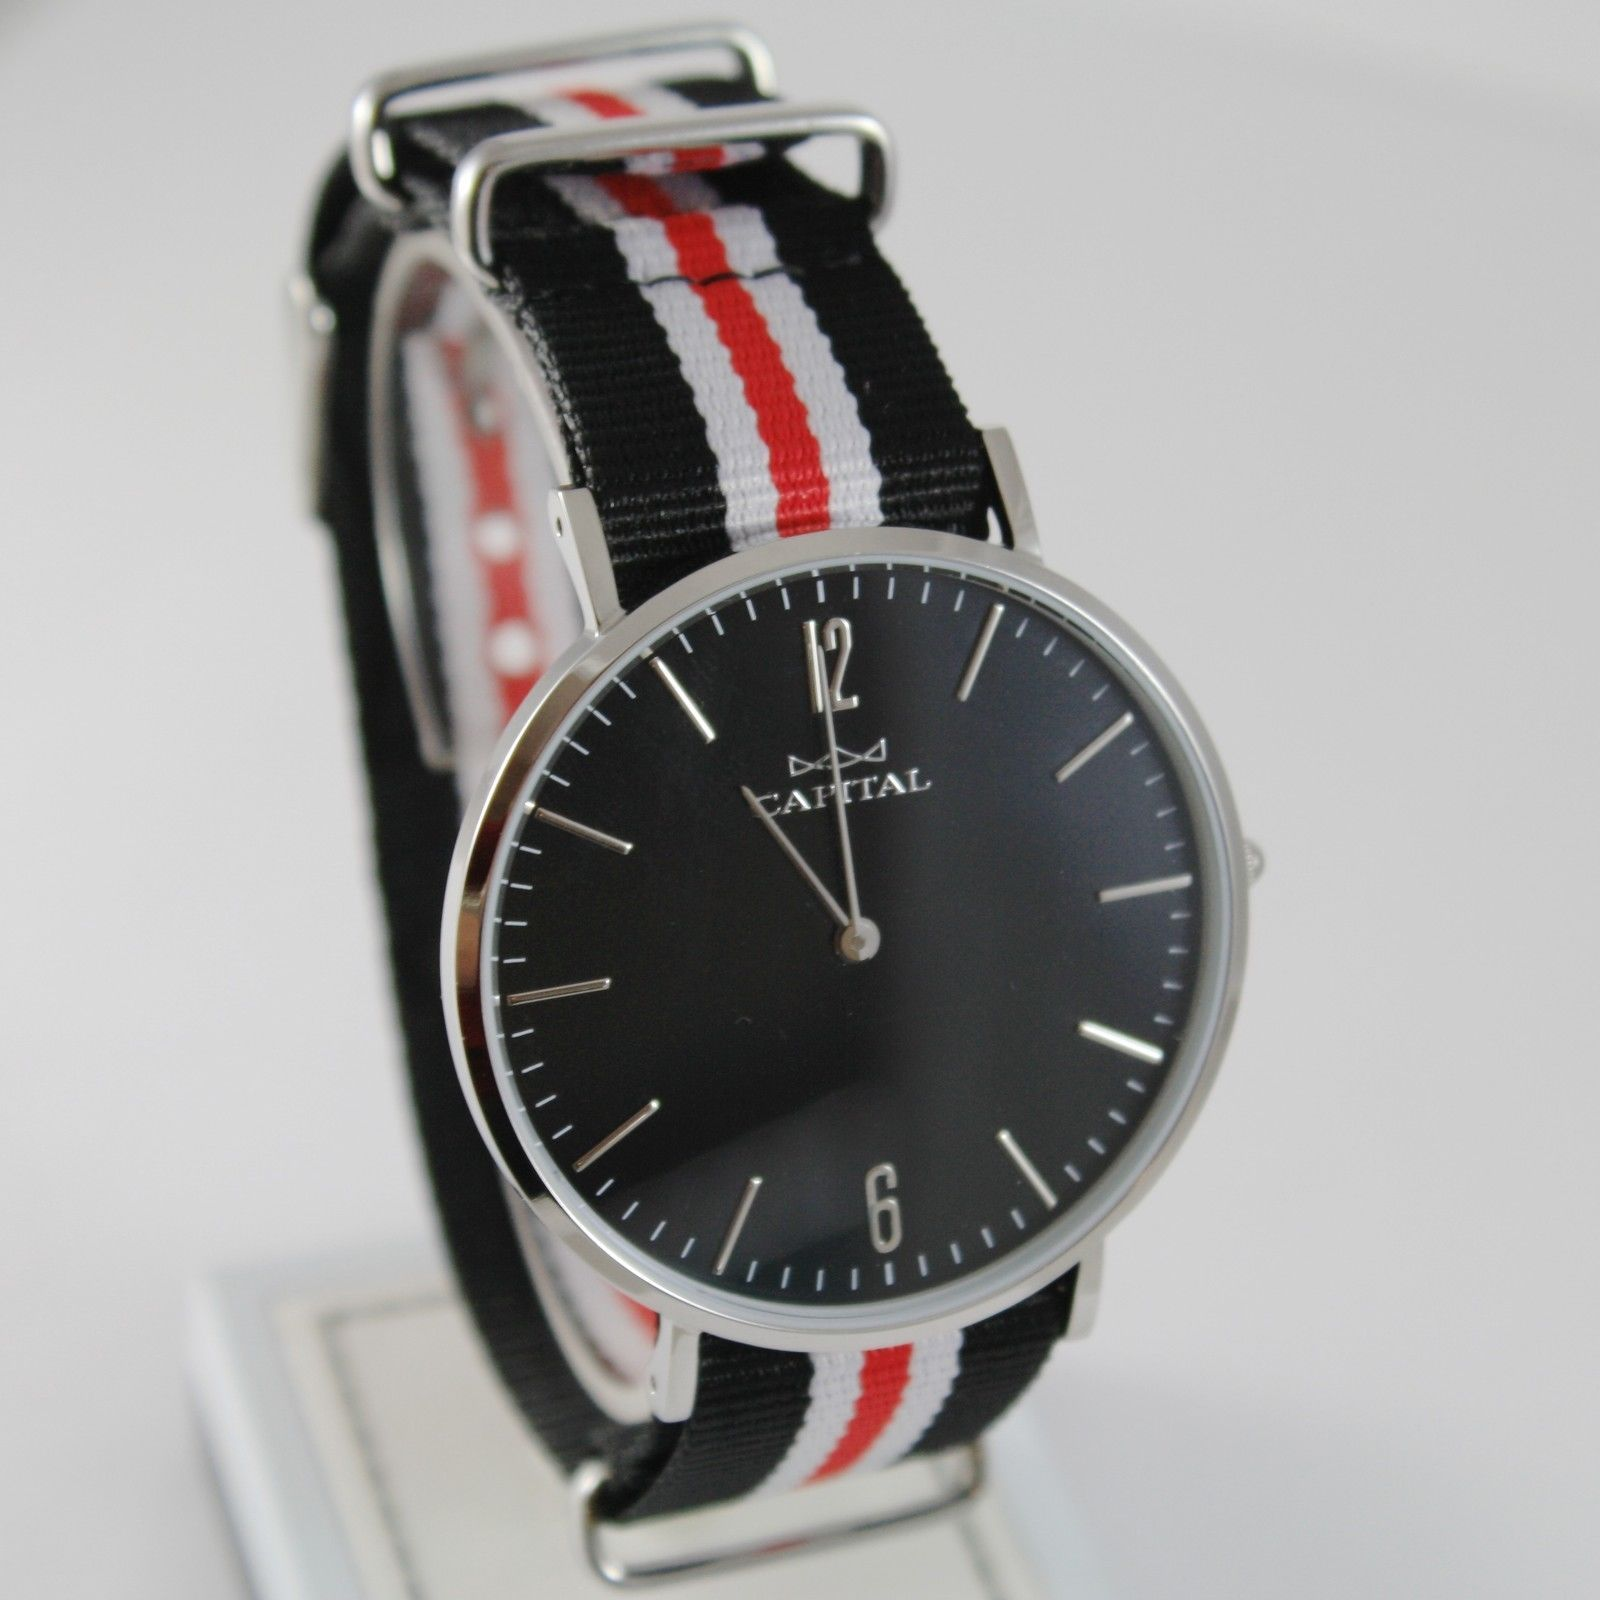 CAPITAL WATCH QUARTZ MOVEMENT 41 MM CASE, BLACK, RED AND WHITE FABRIC BAND NYLON